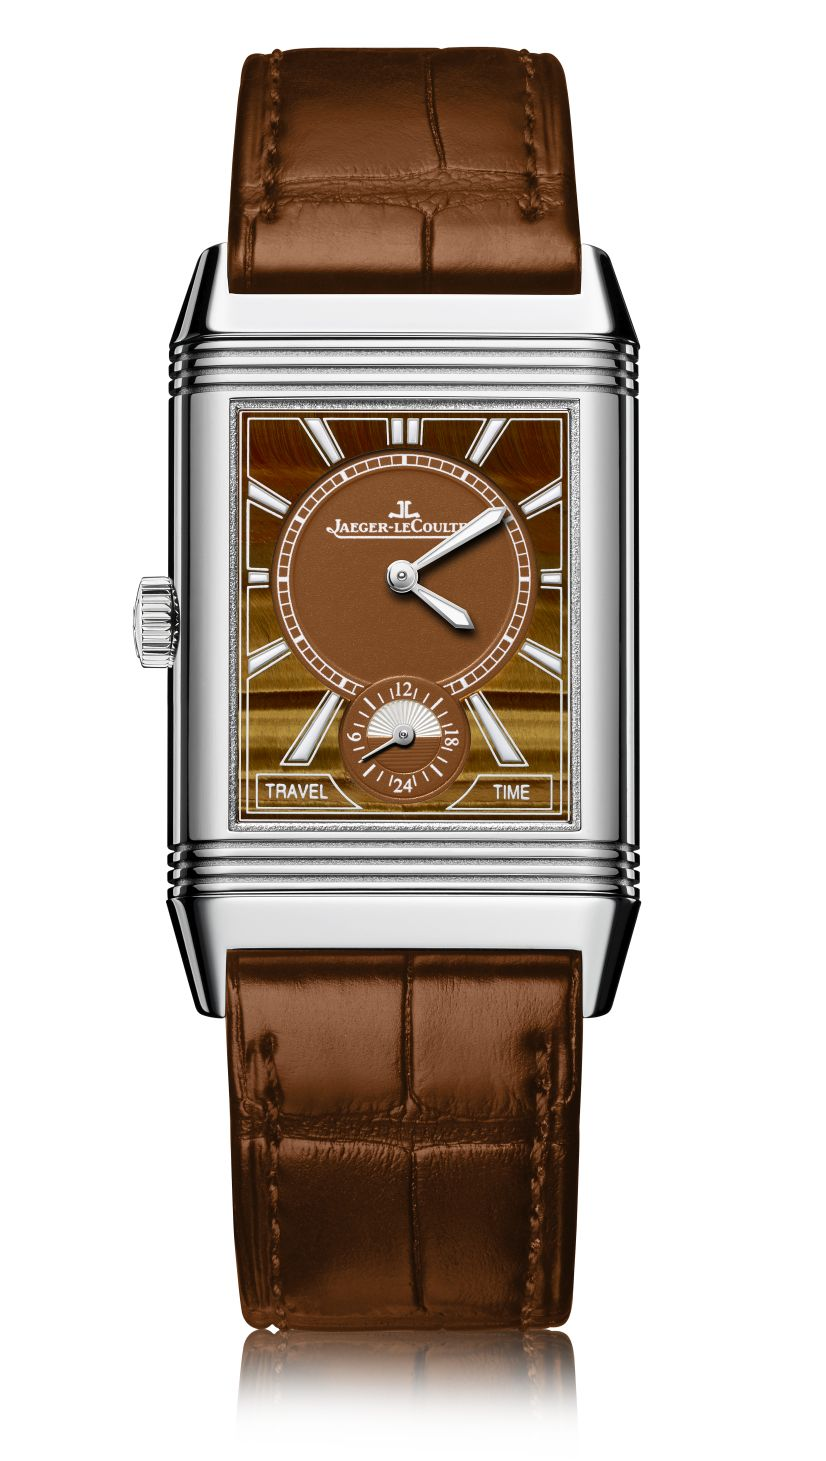 Jaeger-LeCoultre-Reverso-Classic-Large-Duo-Natural-Stone-Dials-1.jpg